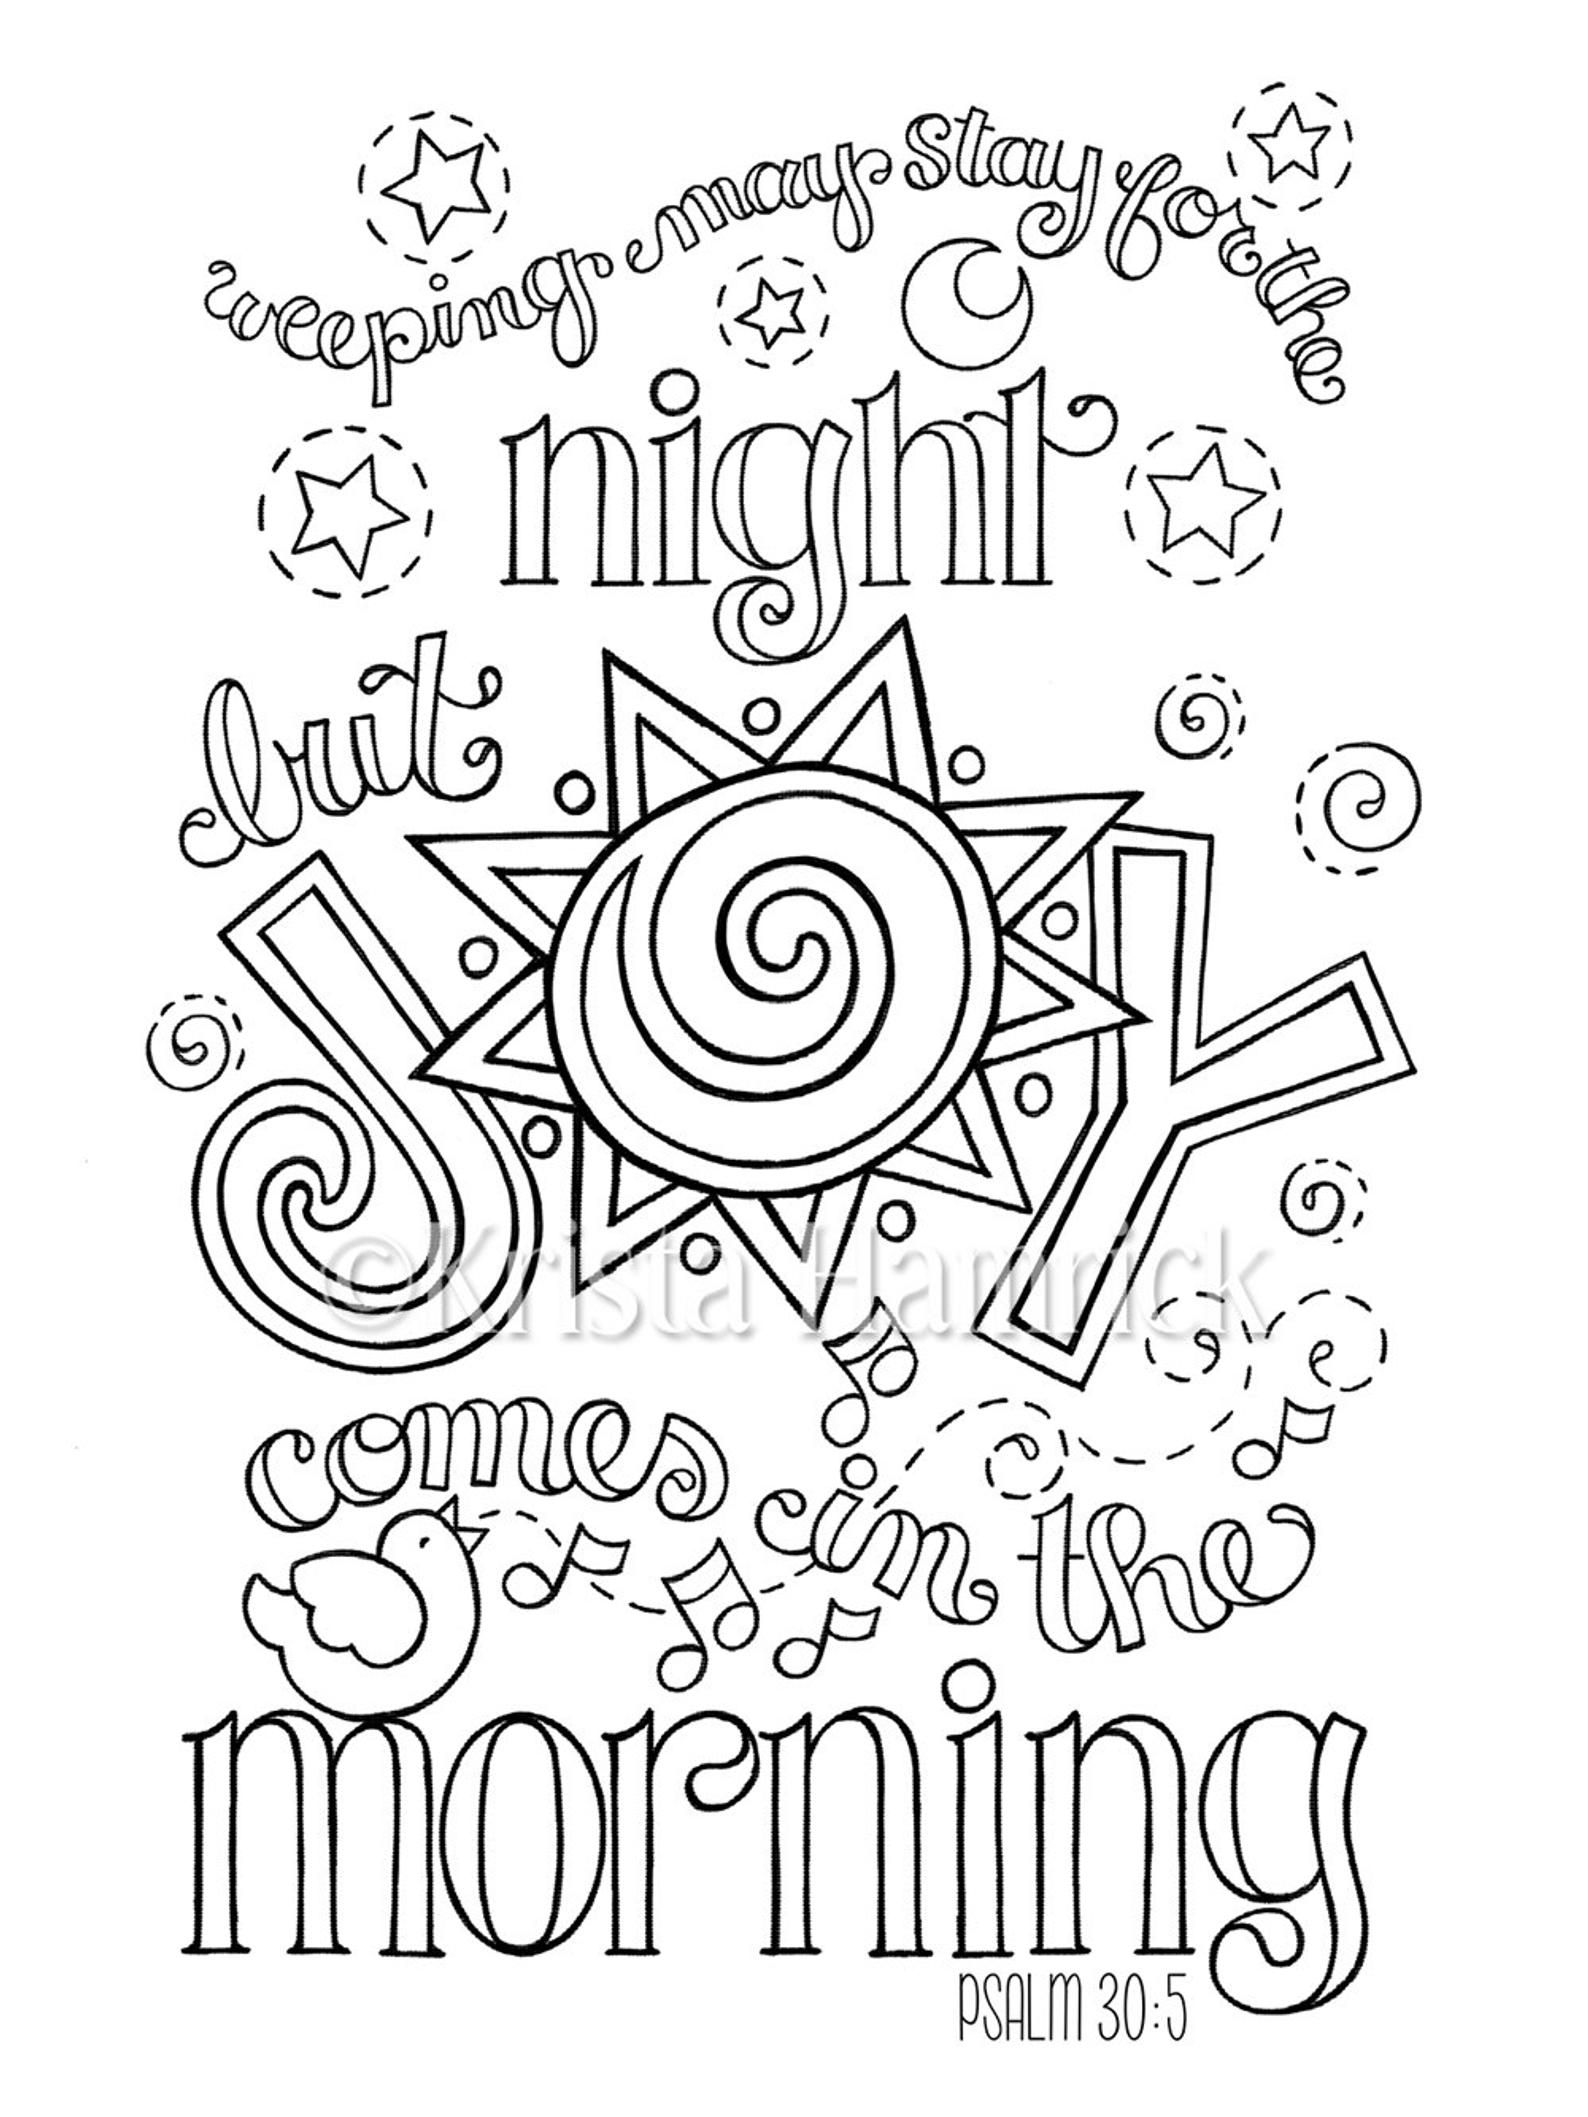 Joy Comes In The Morning Coloring Page In Two Sizes 8 5x11 Etsy Bible Verse Coloring Page Bible Verse Coloring Bible Coloring Pages